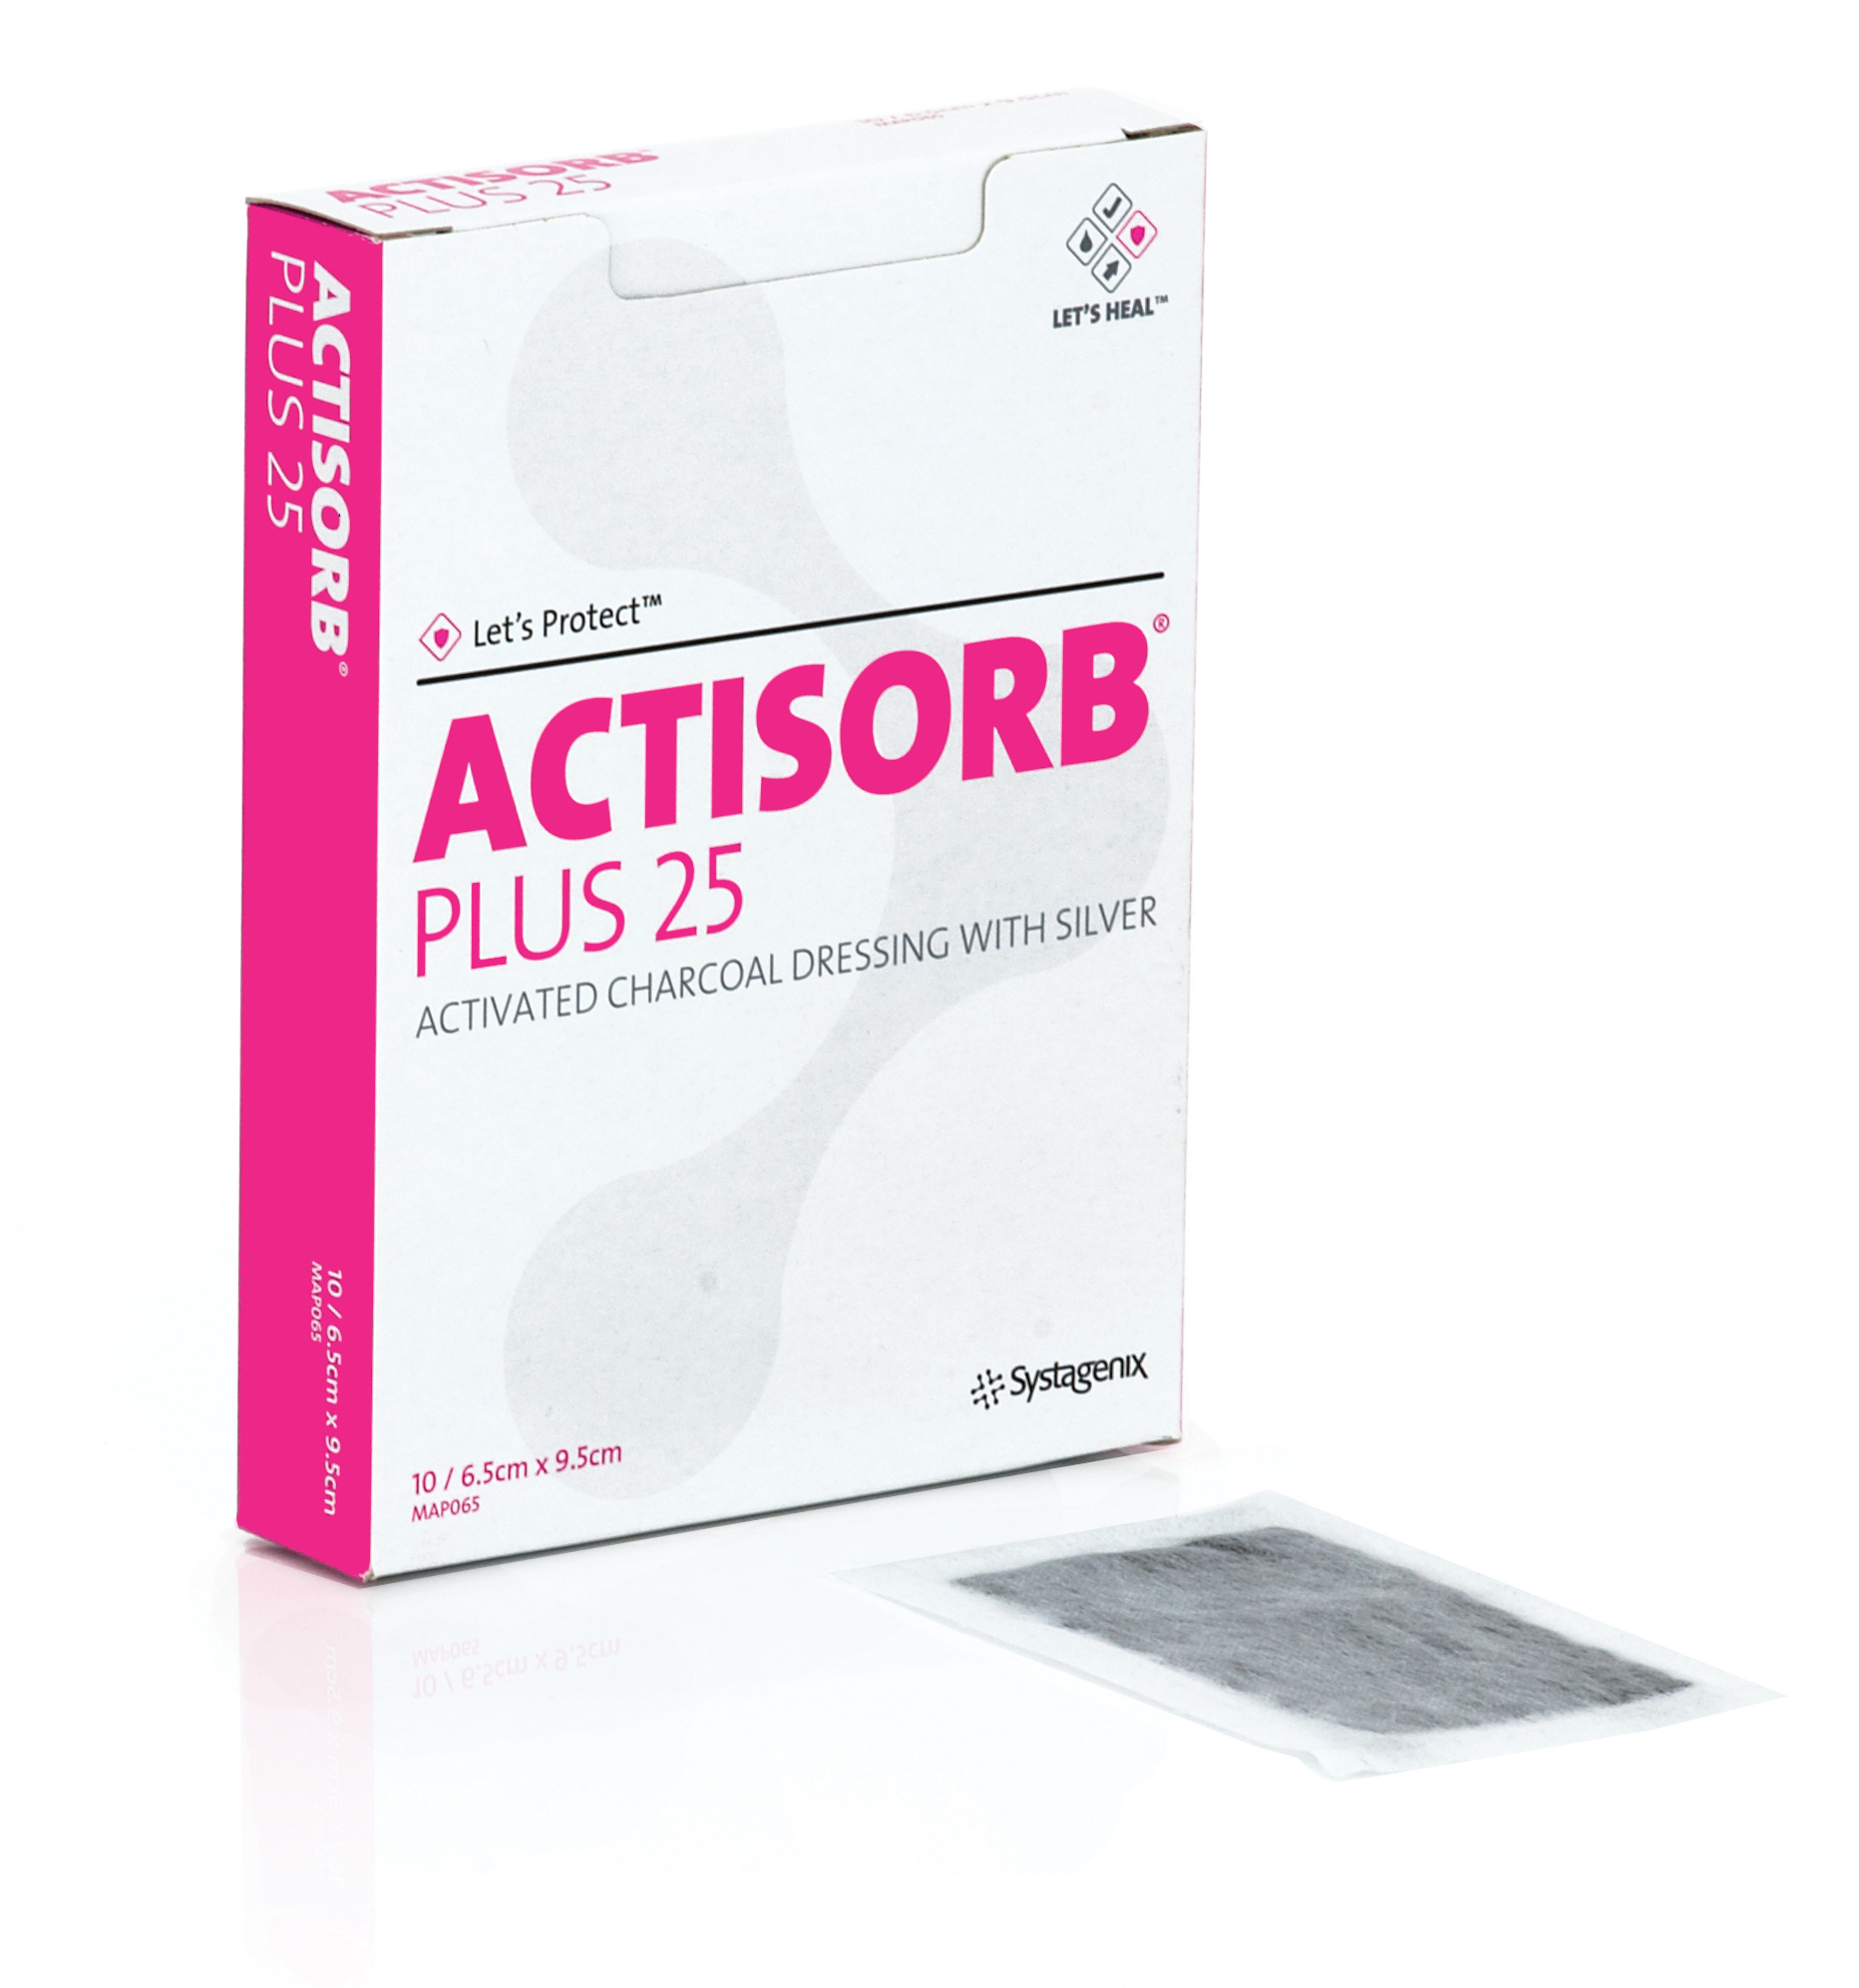 Actisorb Plus  Disponible en diferentes Medidas